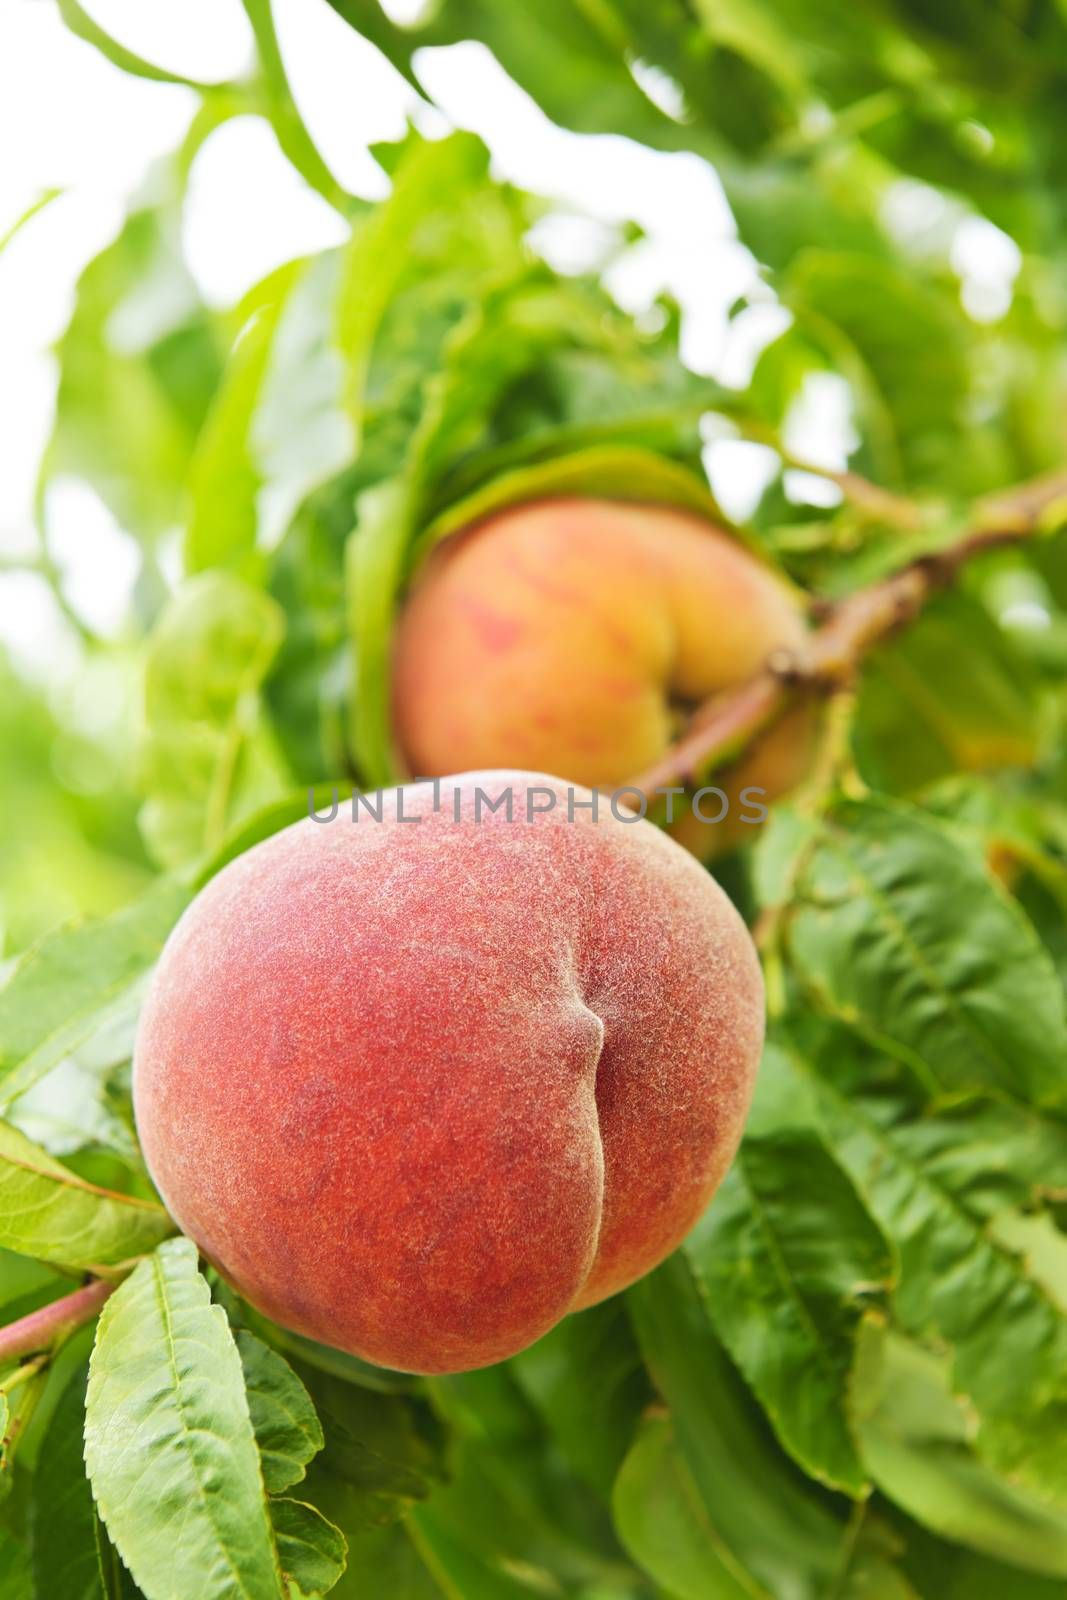 Ripe peaches ready to pick on tree branches